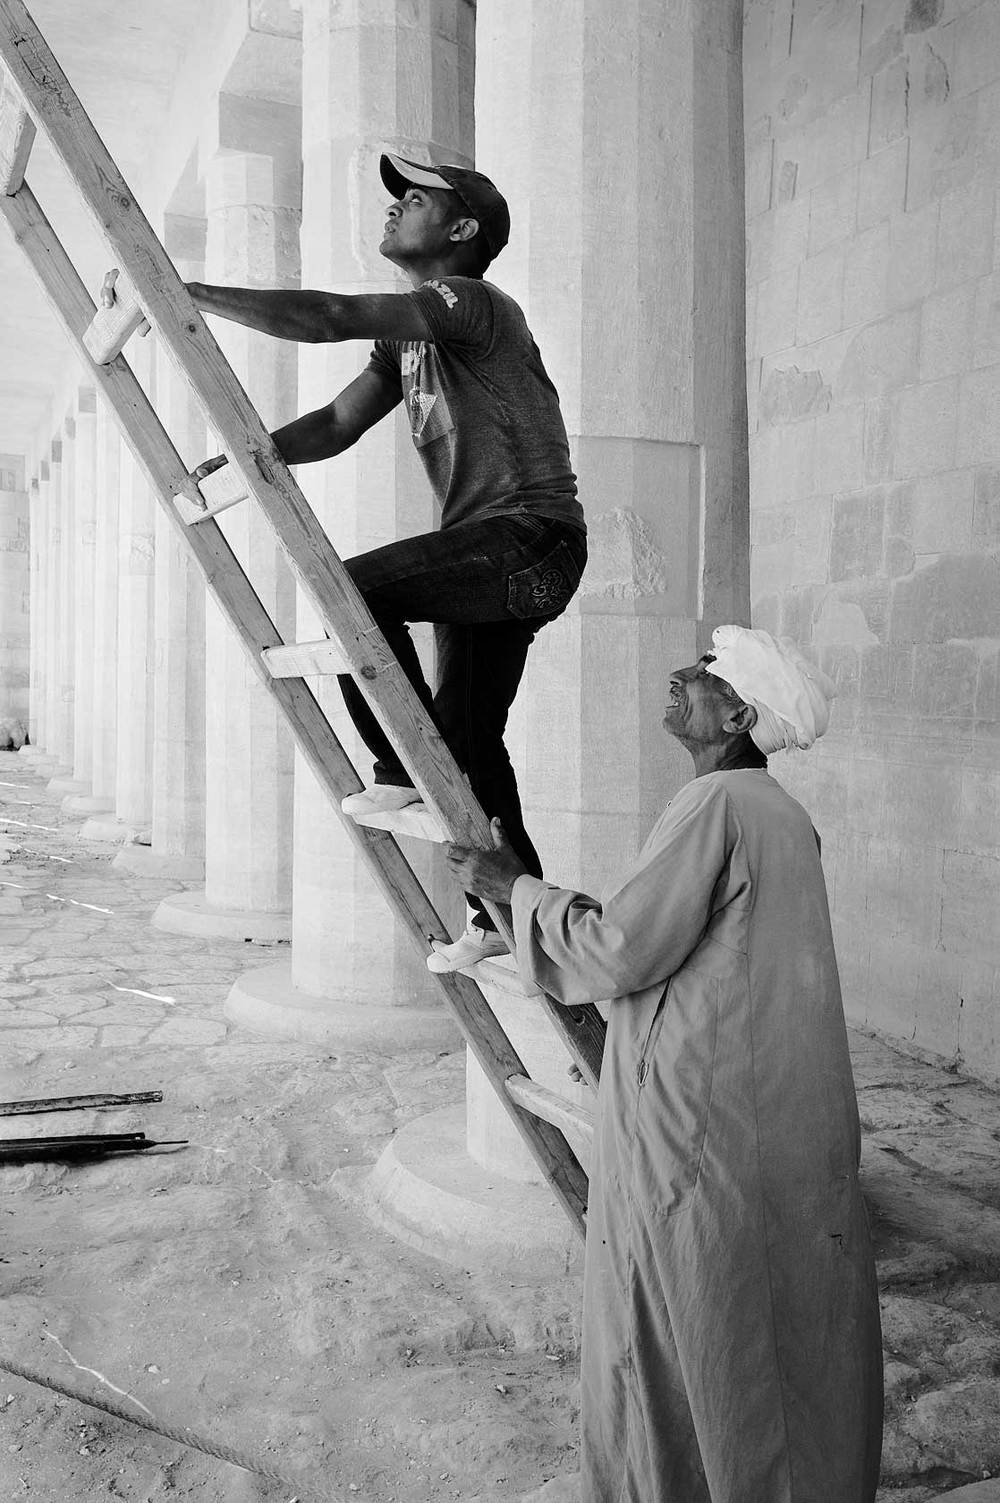 090100_DSC2871---workers-and-ladder.jpg